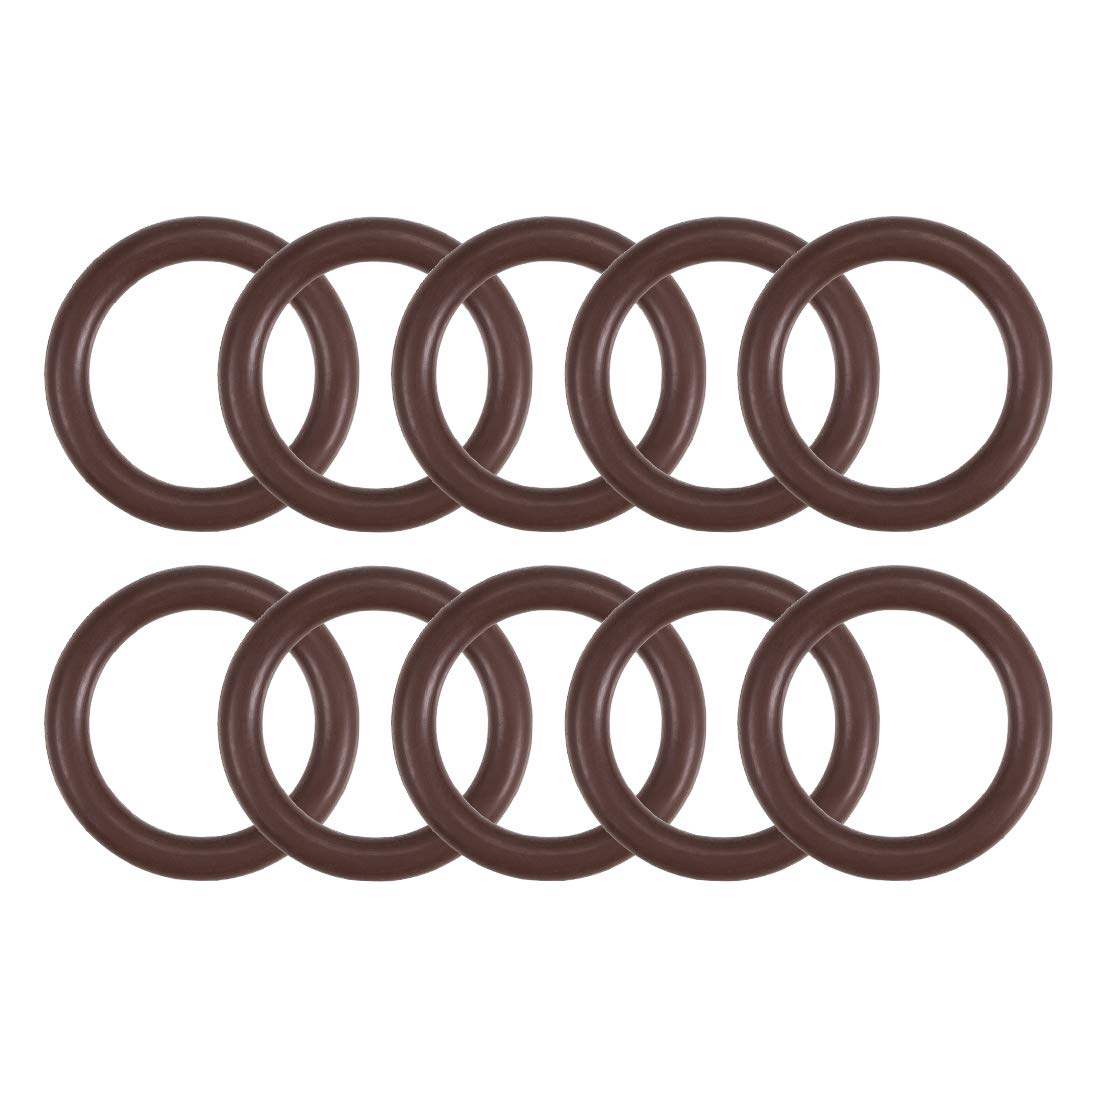 uxcell Fluorine Rubber O-Rings 22mm OD 16mm ID 3mm Width, Metric FKM Sealing Gasket, Pack of 10